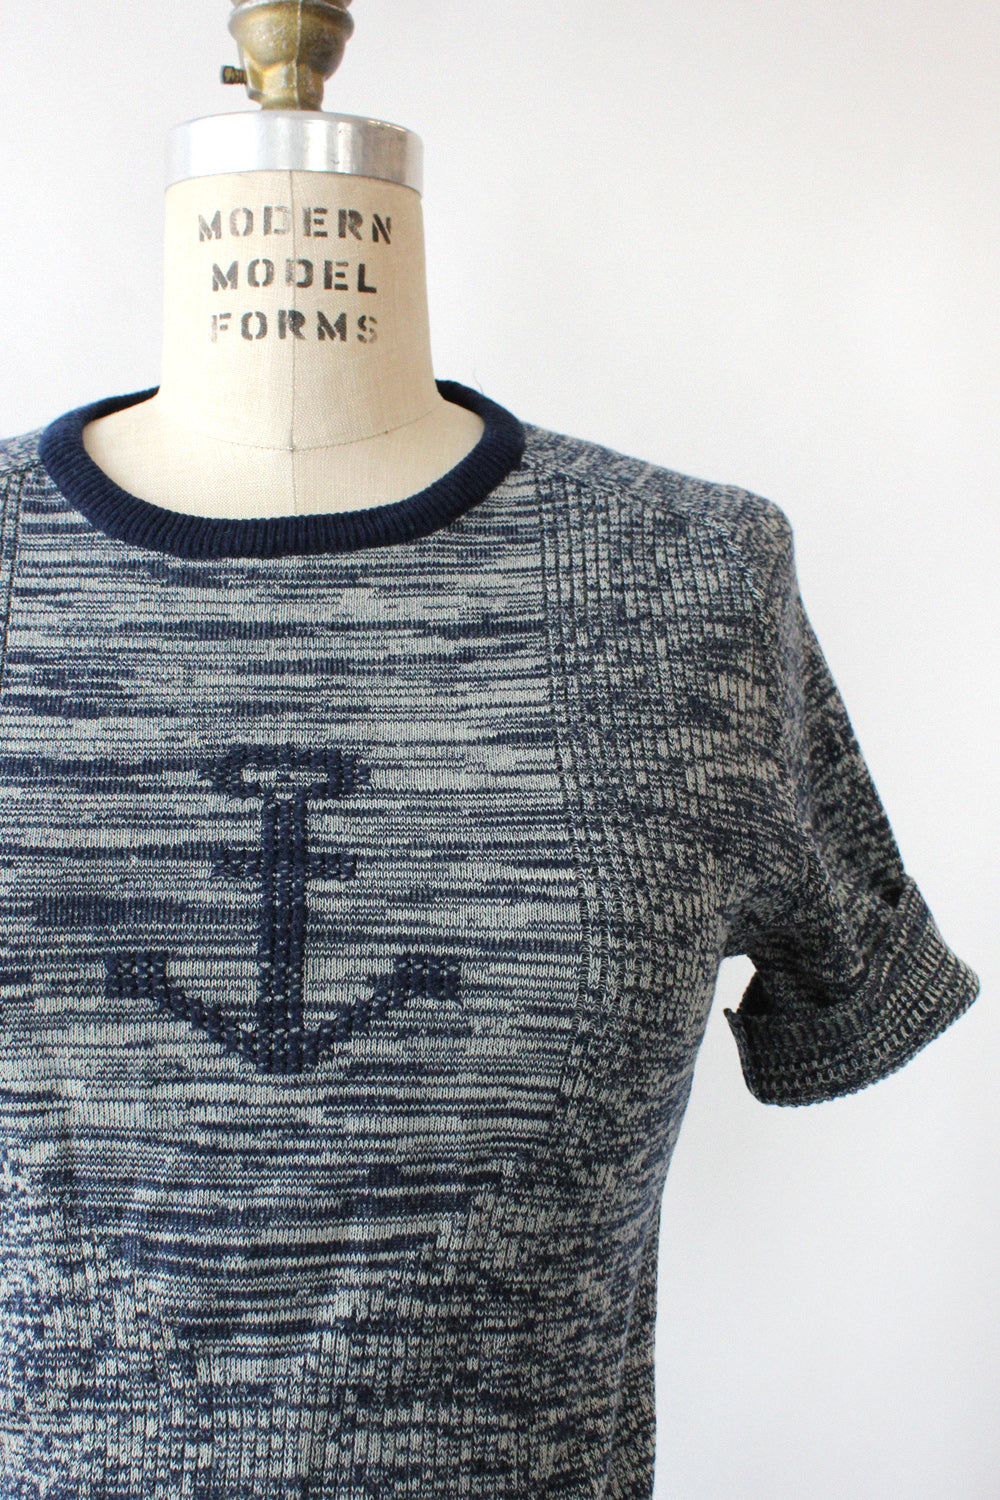 Anchors Away Knit Tee S/M